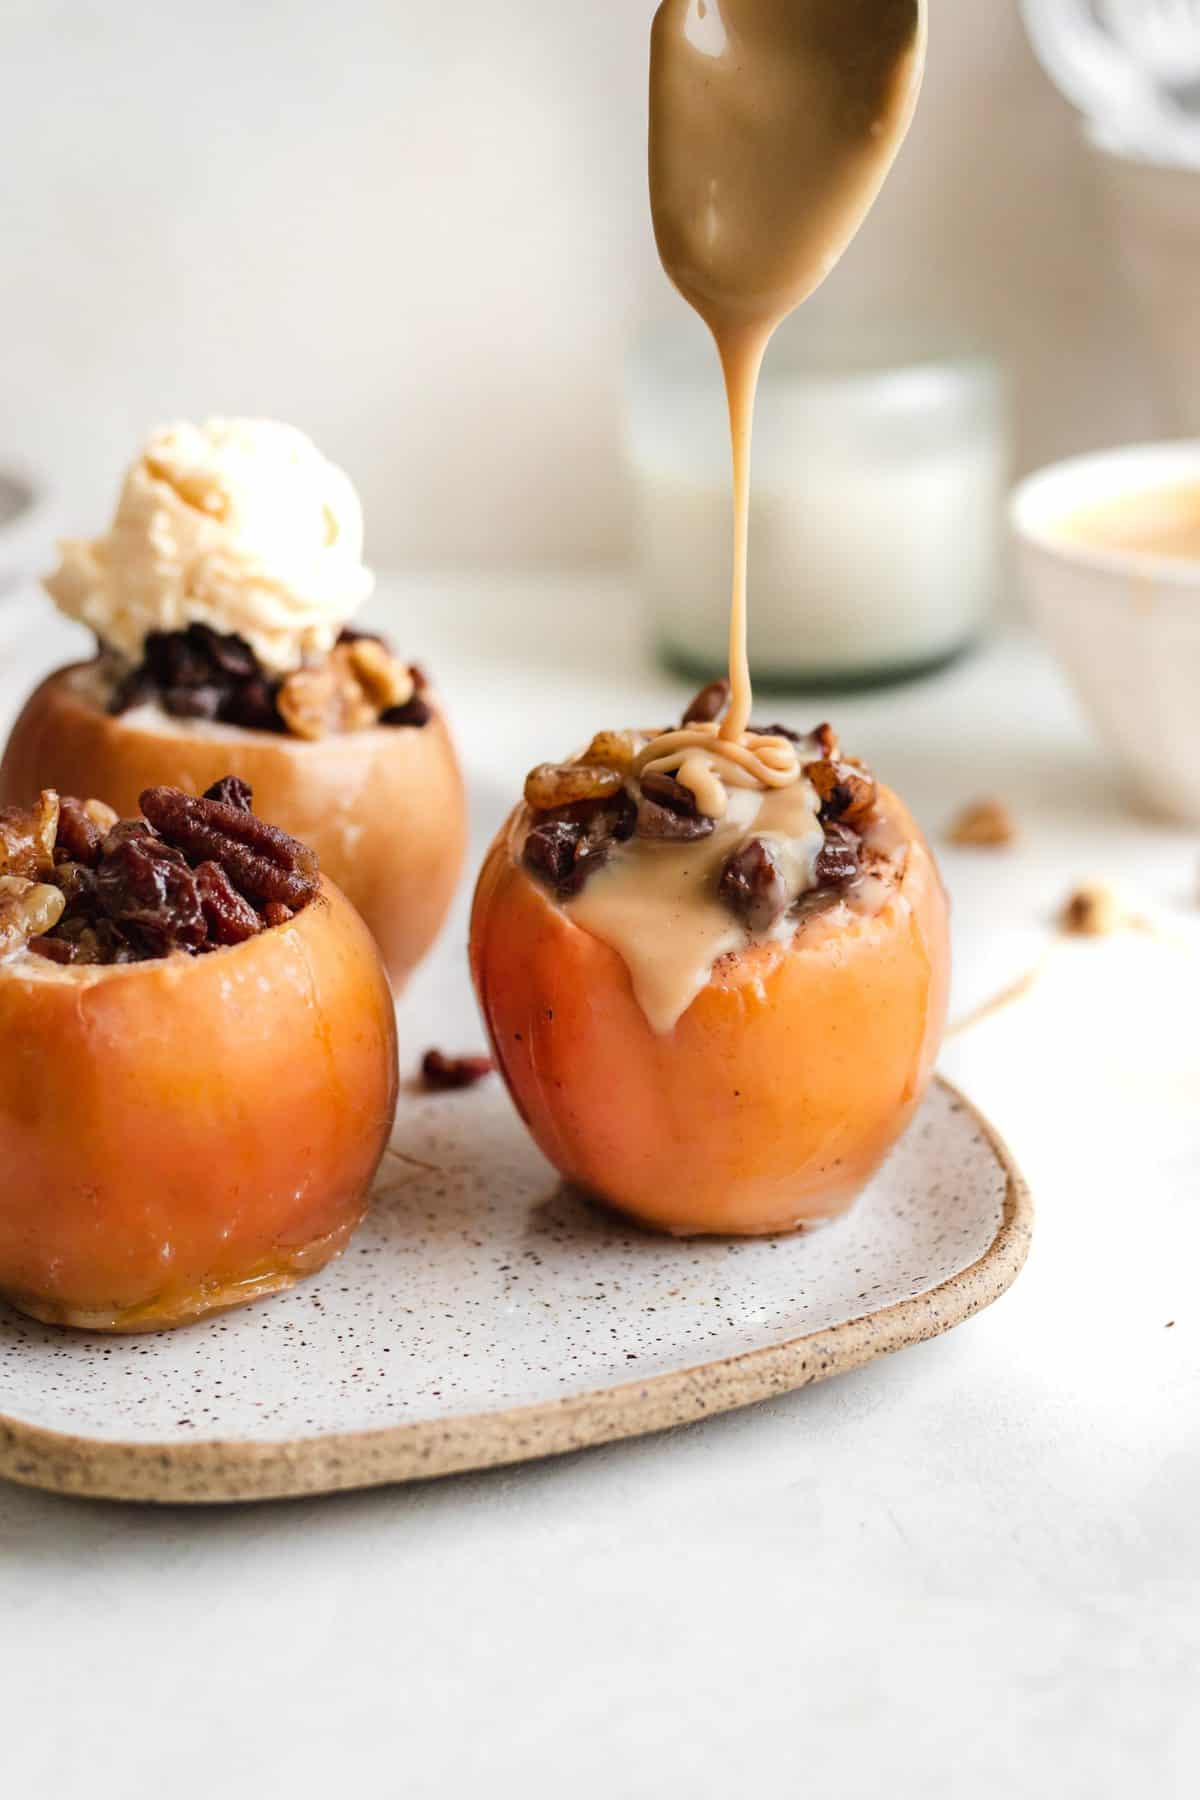 A plate of baked apples with caramel.